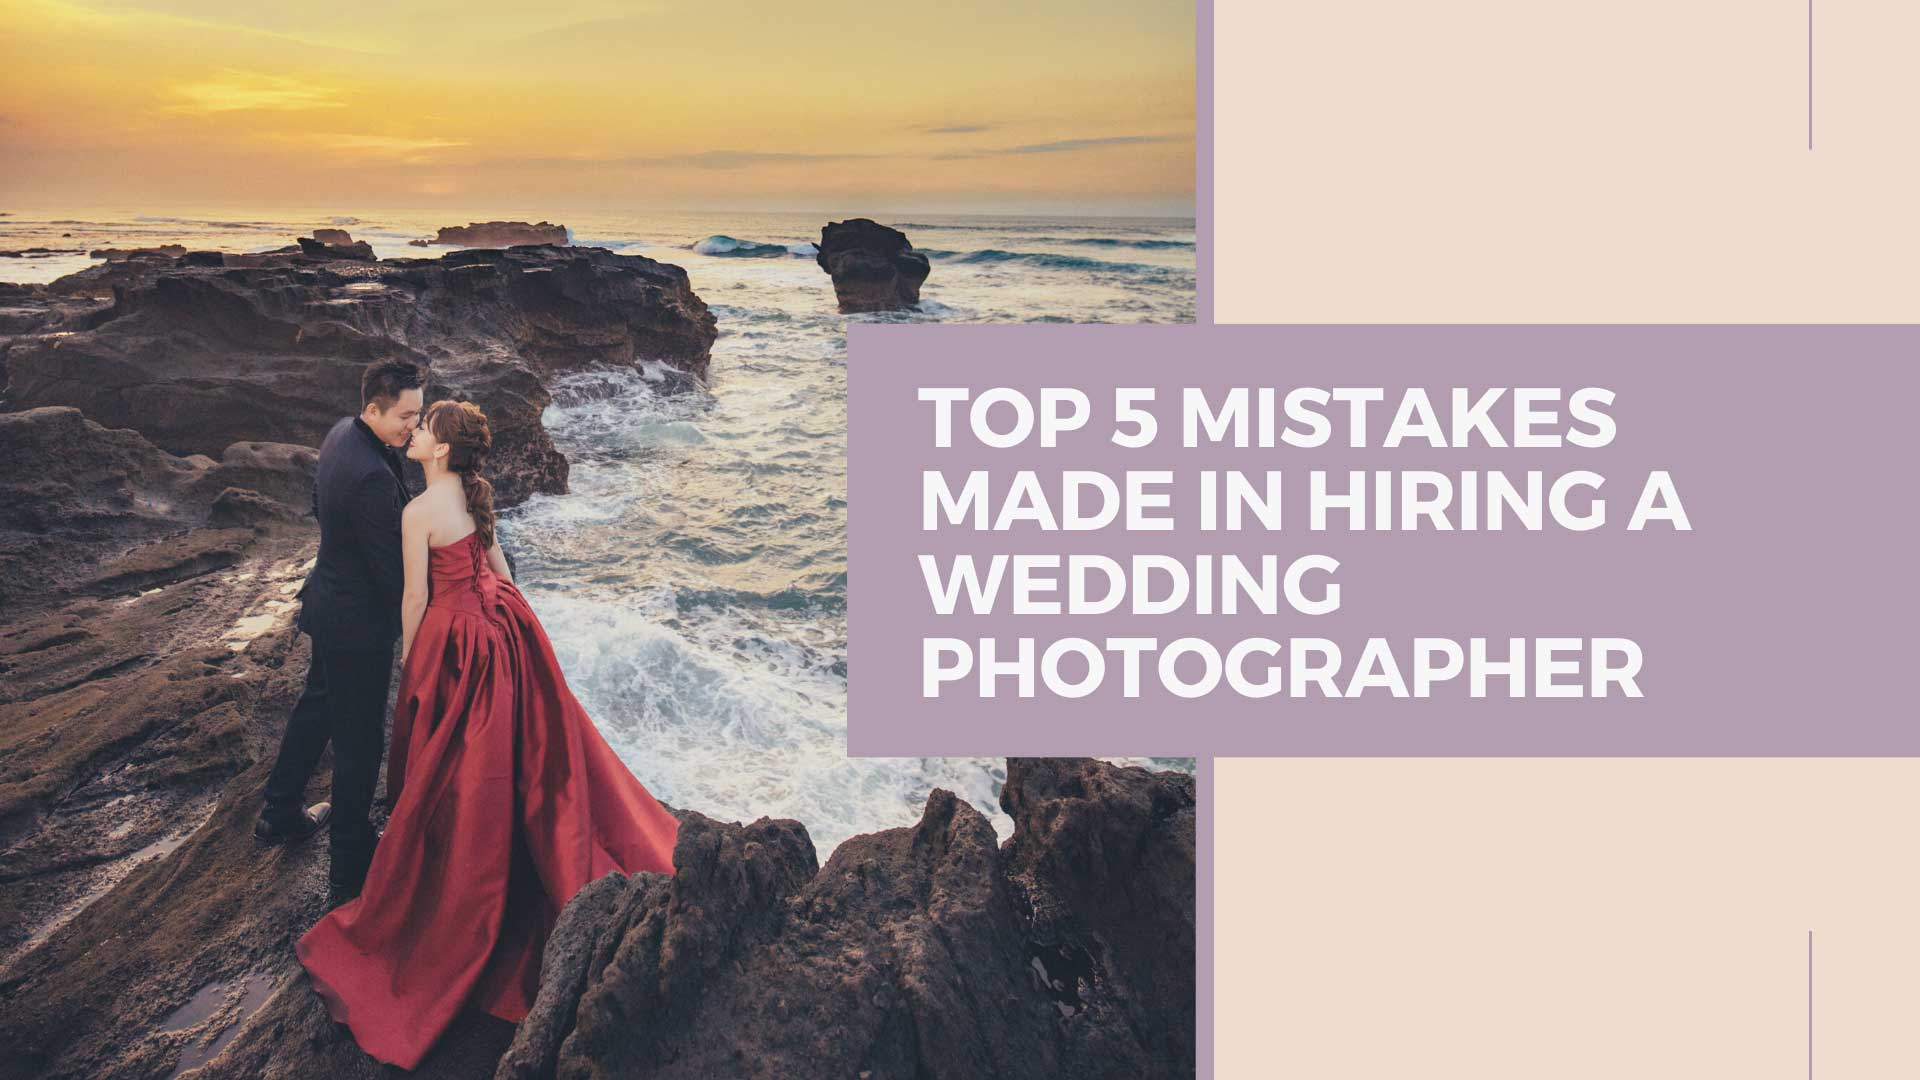 Top 5 Mistakes Made in Hiring a Wedding Photographer